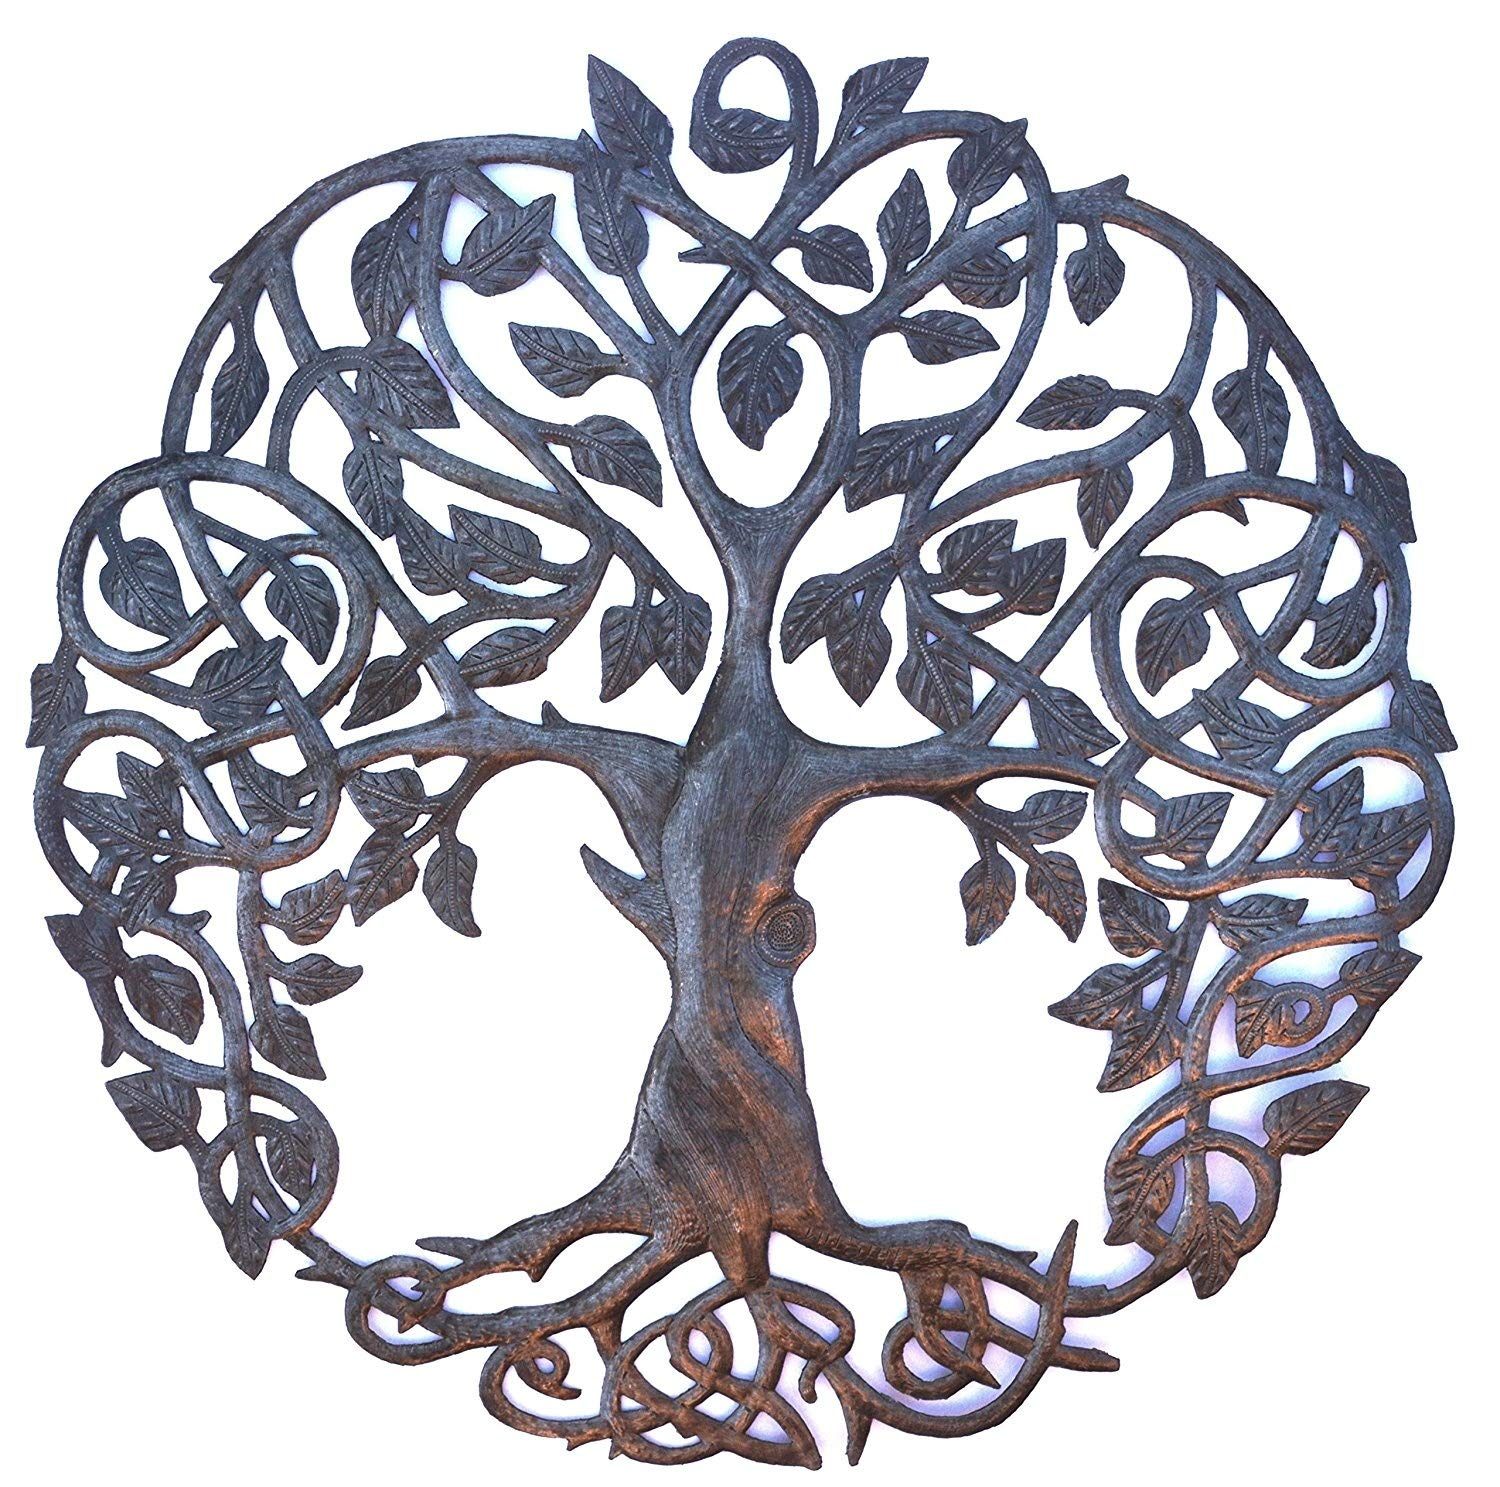 Tree of Life Metal Wall Art, Contemporary Iron Artwork Decor, Celtic Family Trees, 23 in. x 23 in. Round Modern Plaque, Handmade in Haiti,Fair Trade Certified, Signed by Wilson Etienne